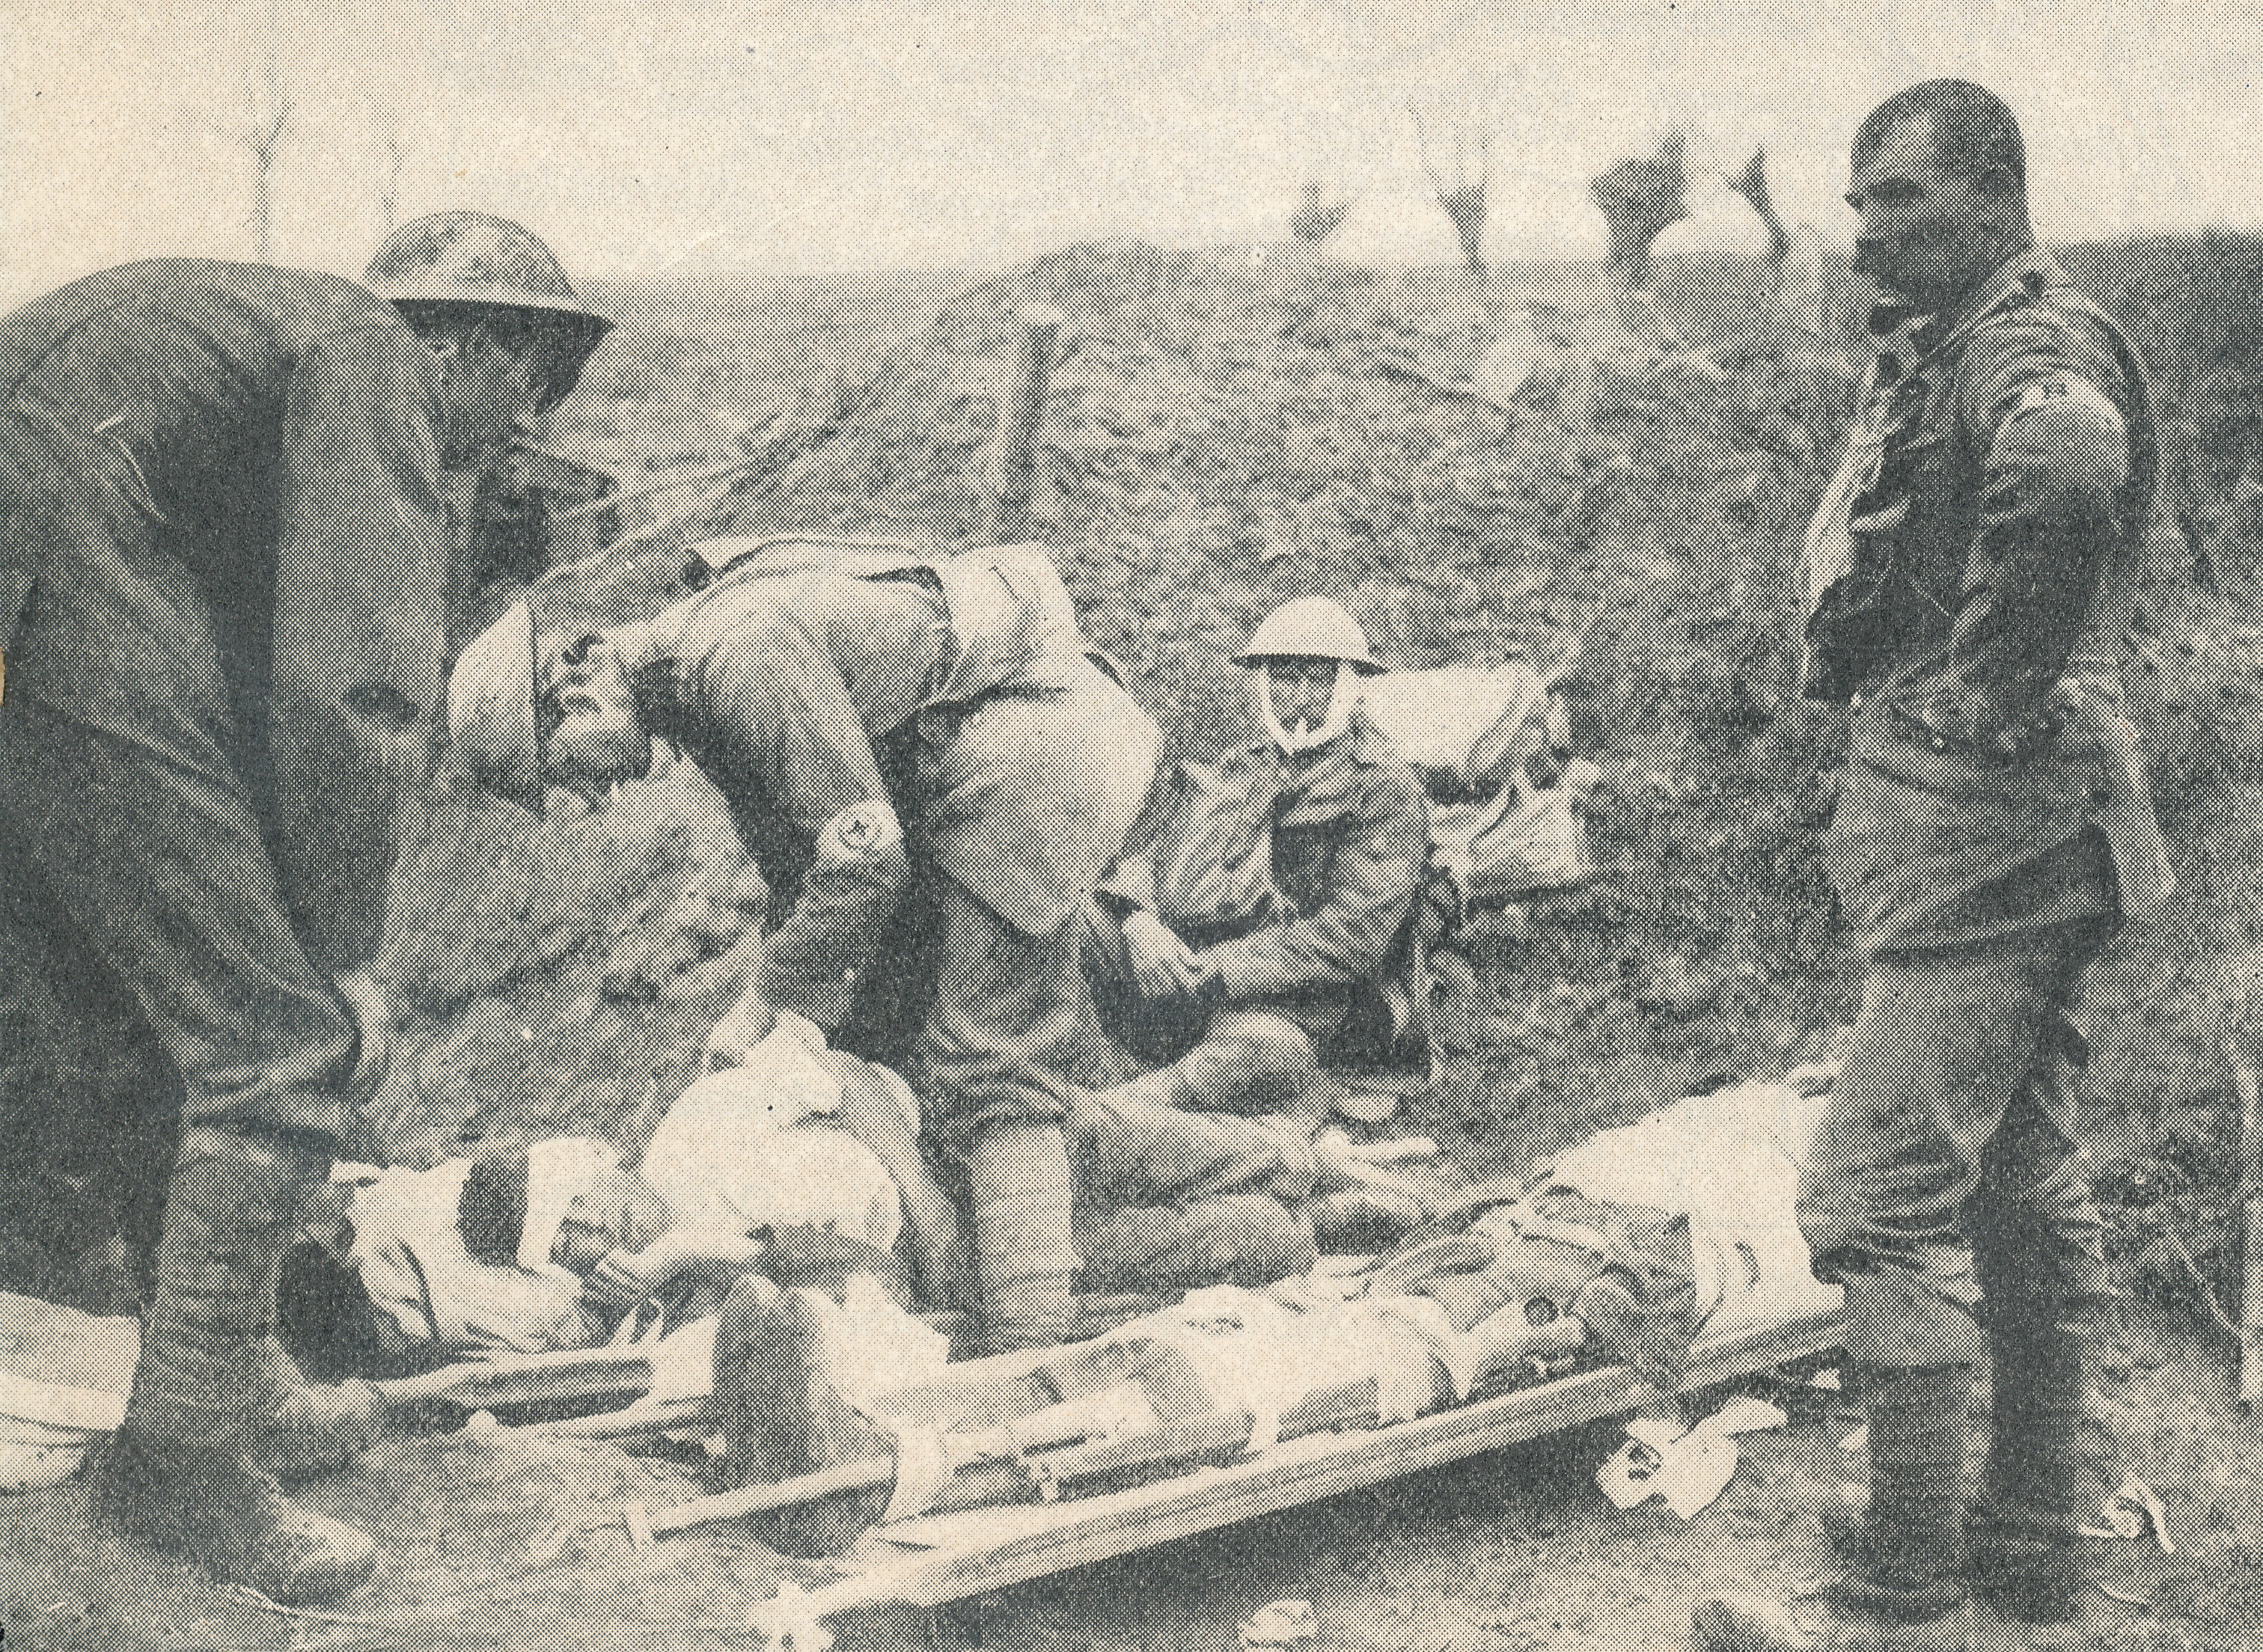 Wounded WWI soldier. From Forces War Records photo library.